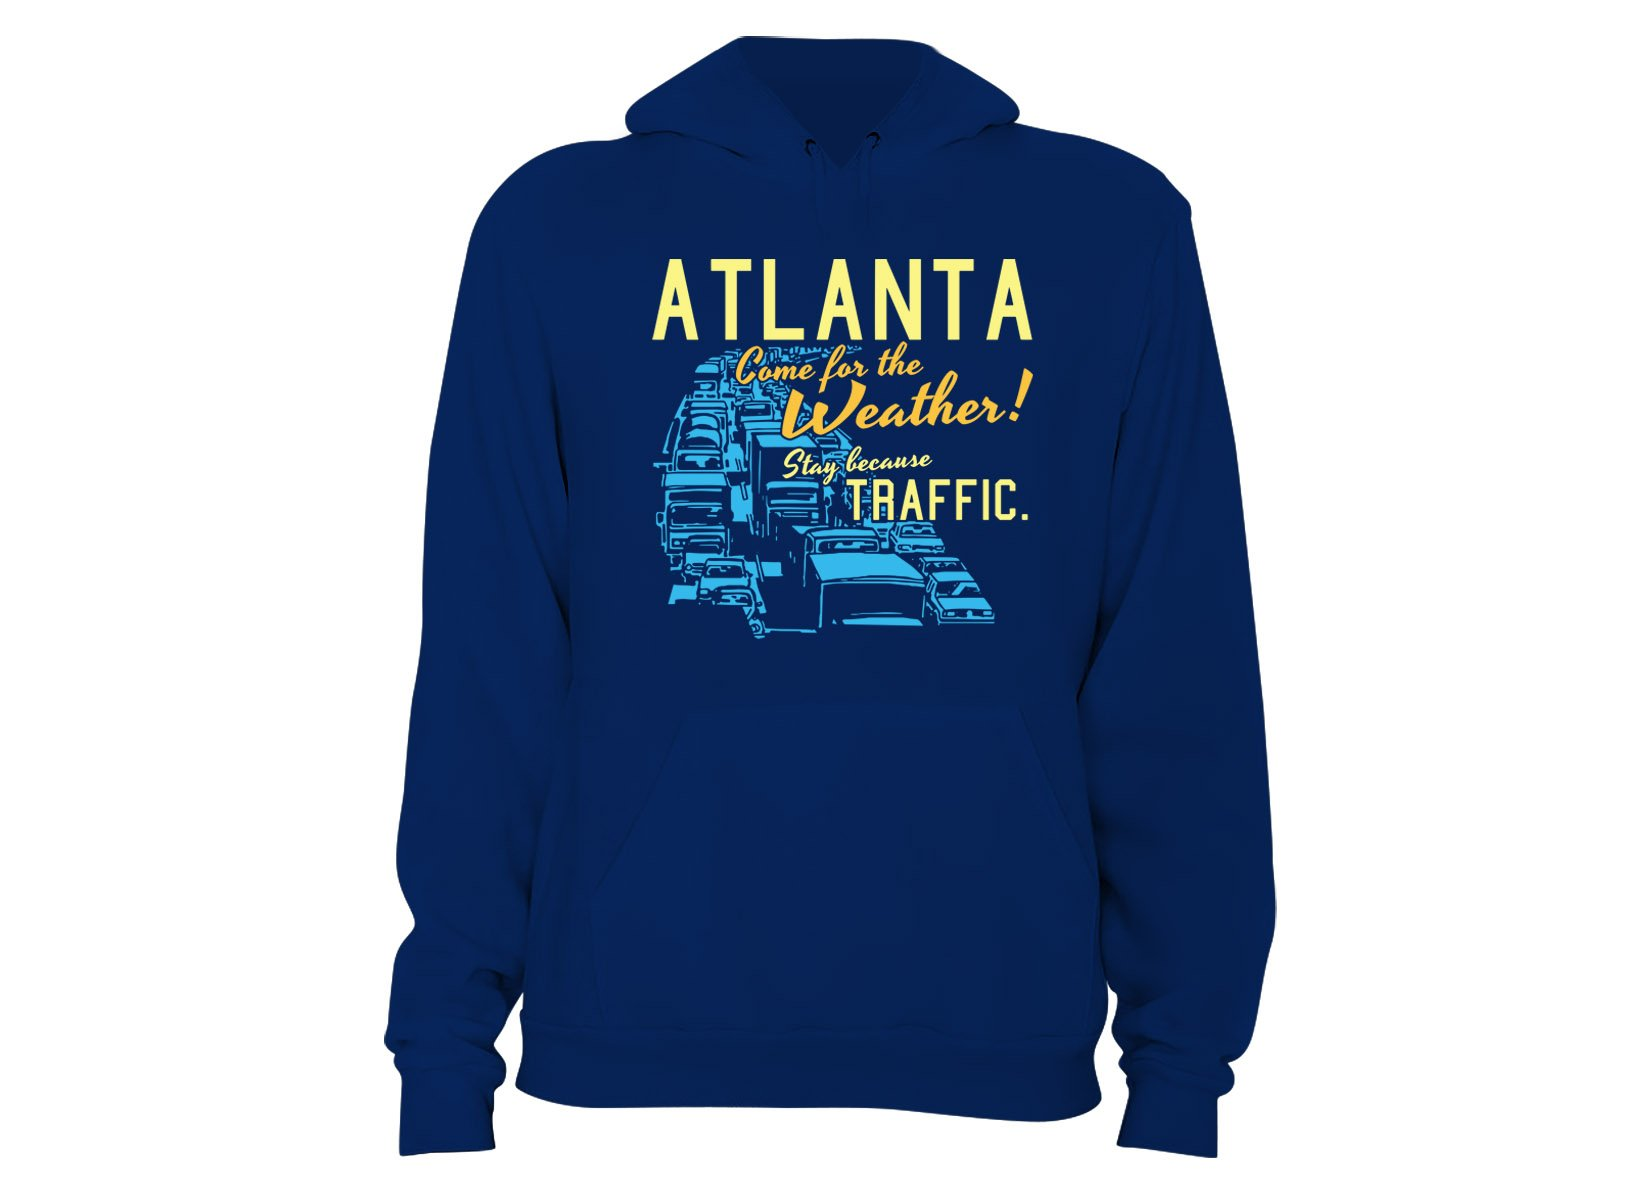 Atlanta, Come For The Weather on Hoodie